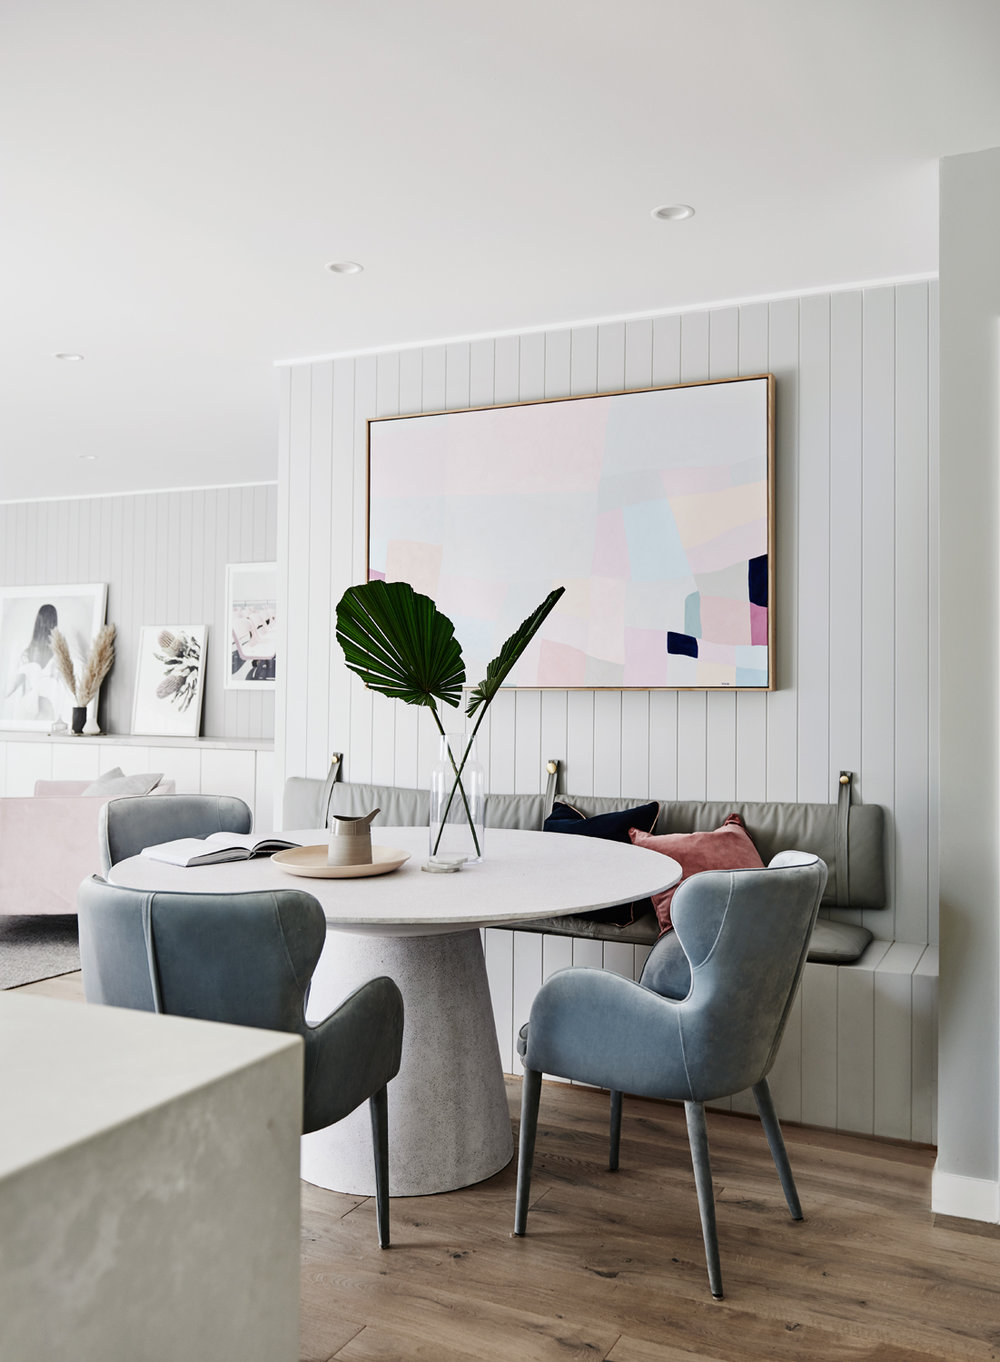 ... Used As Bedroom Wardrobes), Norsu Partnered With An Incredible Line Up  Of Australian And International Suppliers On The Project, Including  Caesarstone, ...